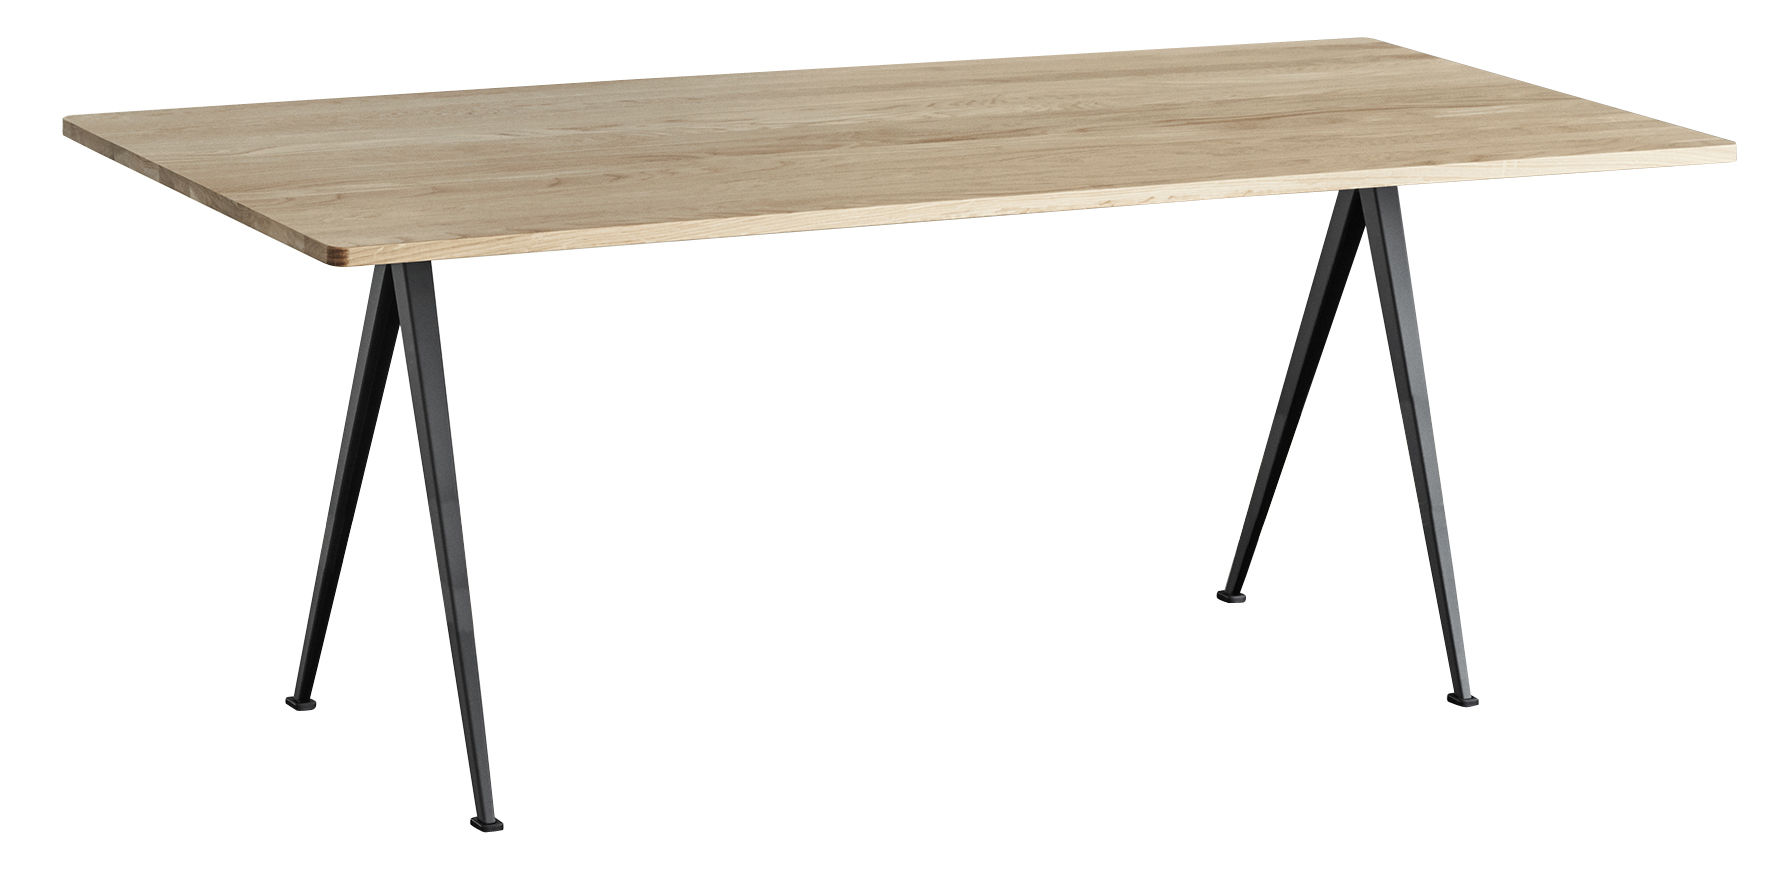 Furniture - Dining Tables - Pyramid n°02 Table - / 190 x 85 cm - Re-issue 1959 by Hay - 190 x 85 / Light oak & black - Lacquered steel, Oak